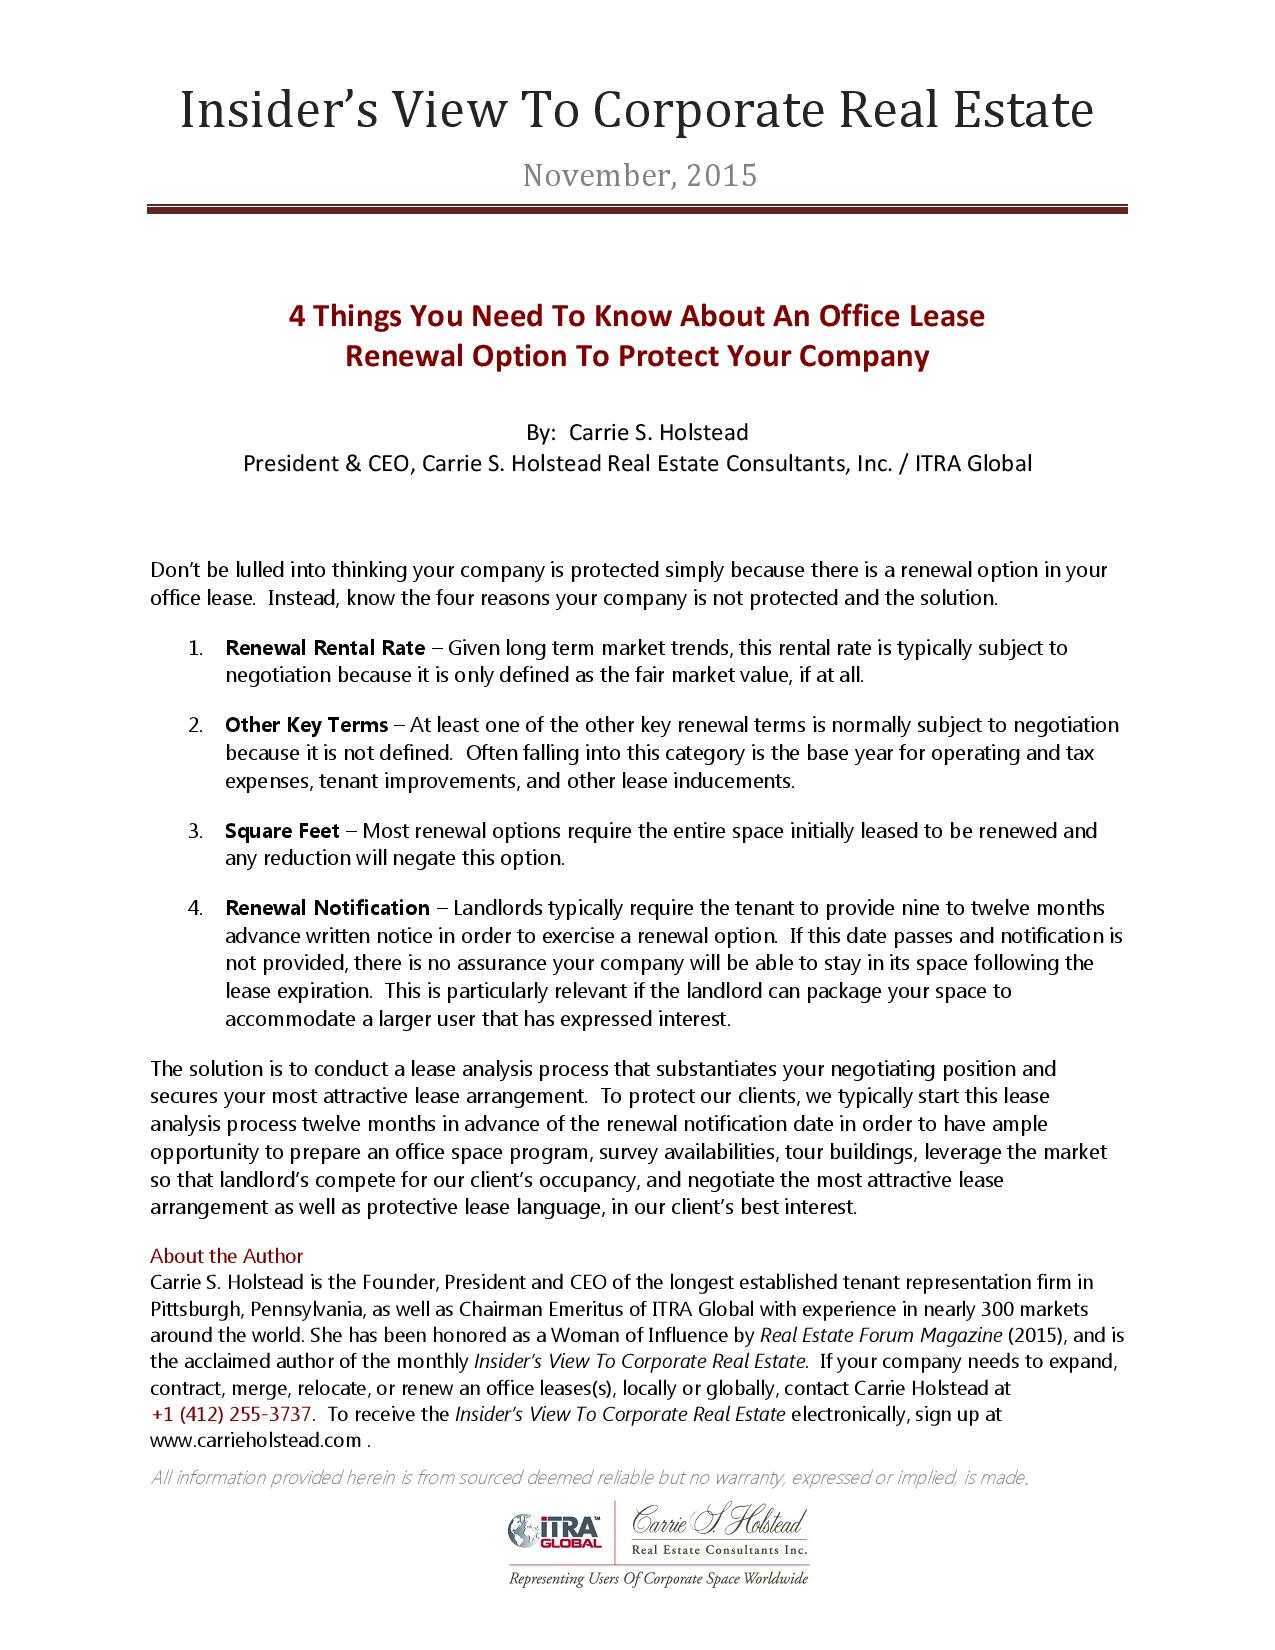 4 things you need to know about an office lease renewal option to